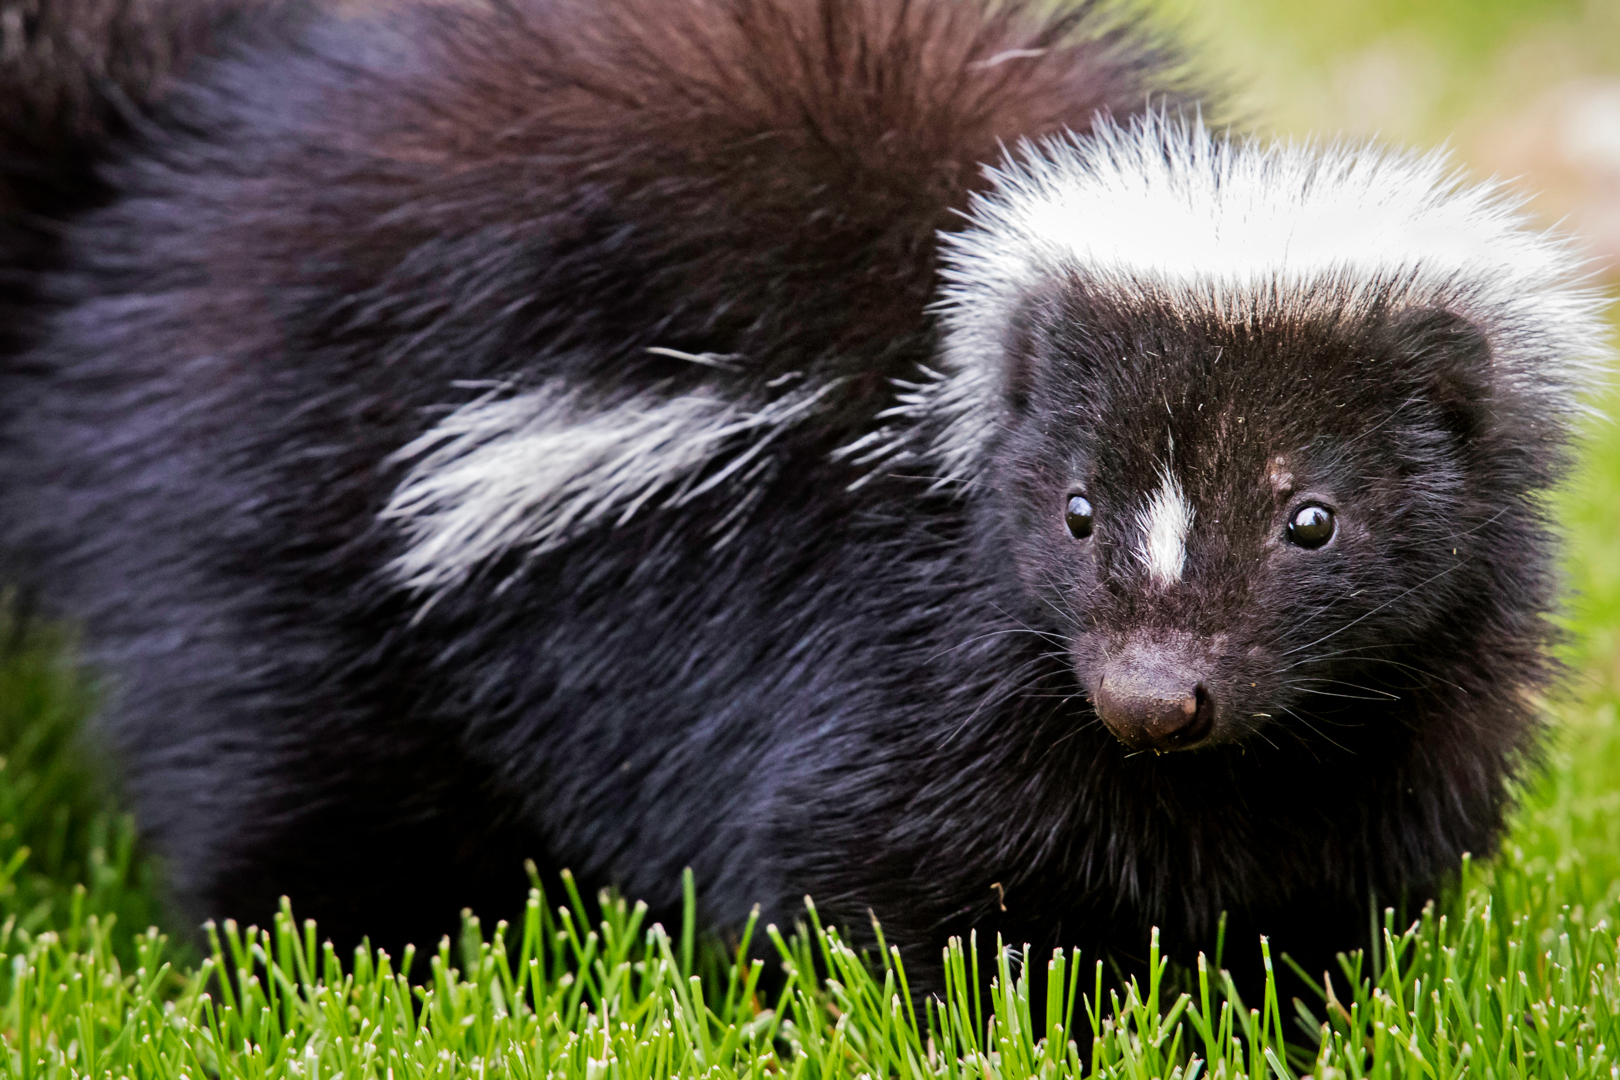 A young skunk in a park field